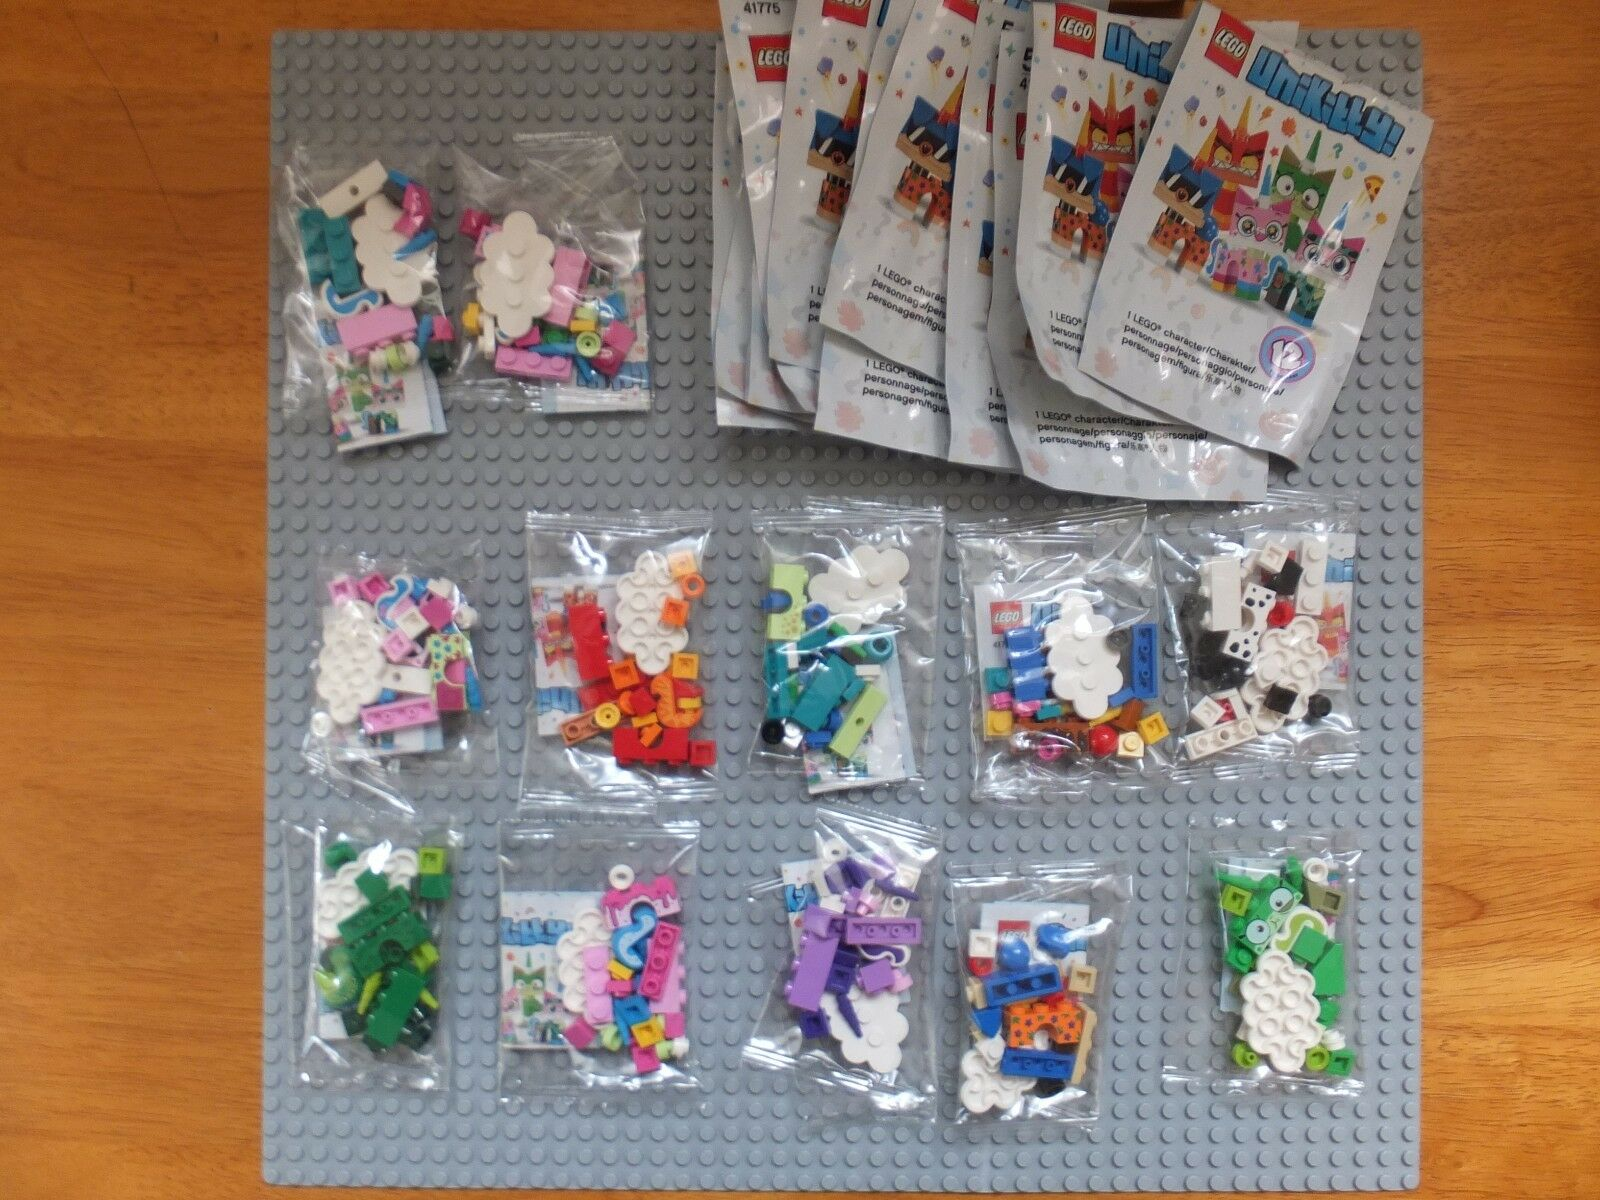 Lego Unikitty Series 1 Complete   Full Set Of 12 Minifigures